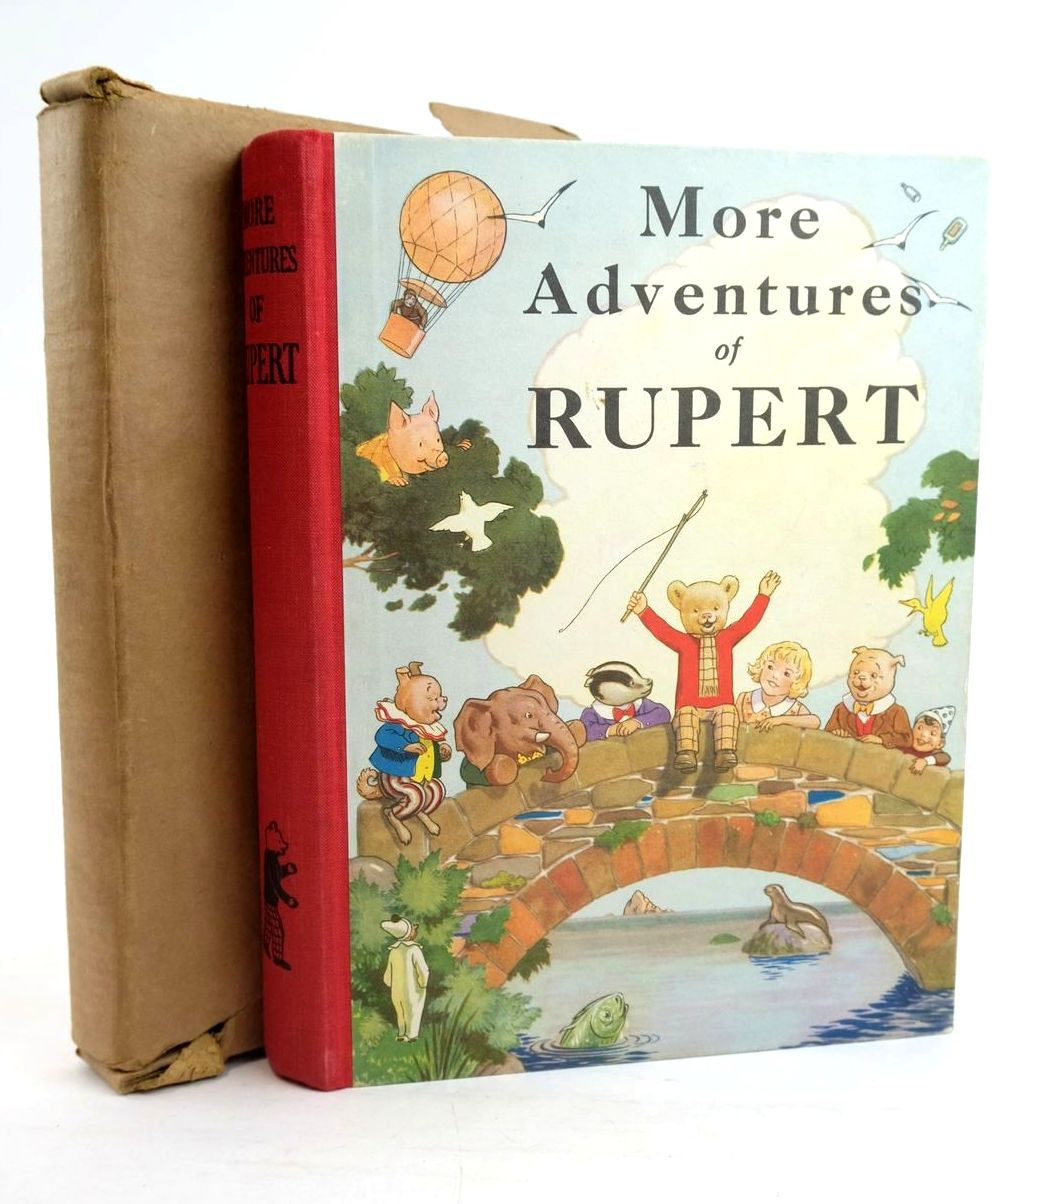 Photo of RUPERT ANNUAL 1937 - MORE ADVENTURES OF RUPERT written by Bestall, Alfred illustrated by Bestall, Alfred published by Daily Express (STOCK CODE: 1319930)  for sale by Stella & Rose's Books